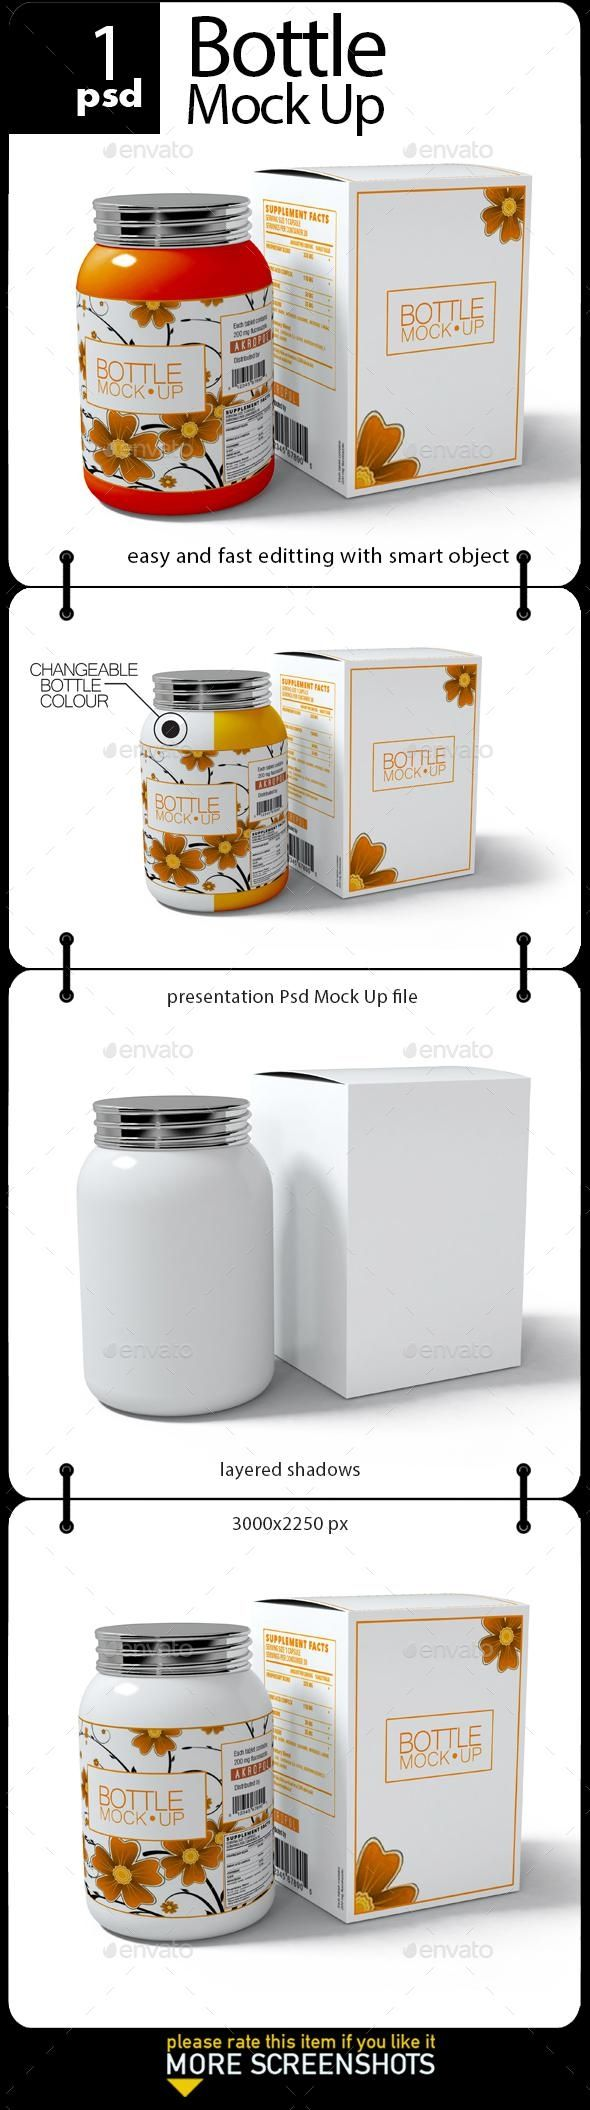 Download Bottle Mock Up - Envato Market #mockup #psd #template # ...